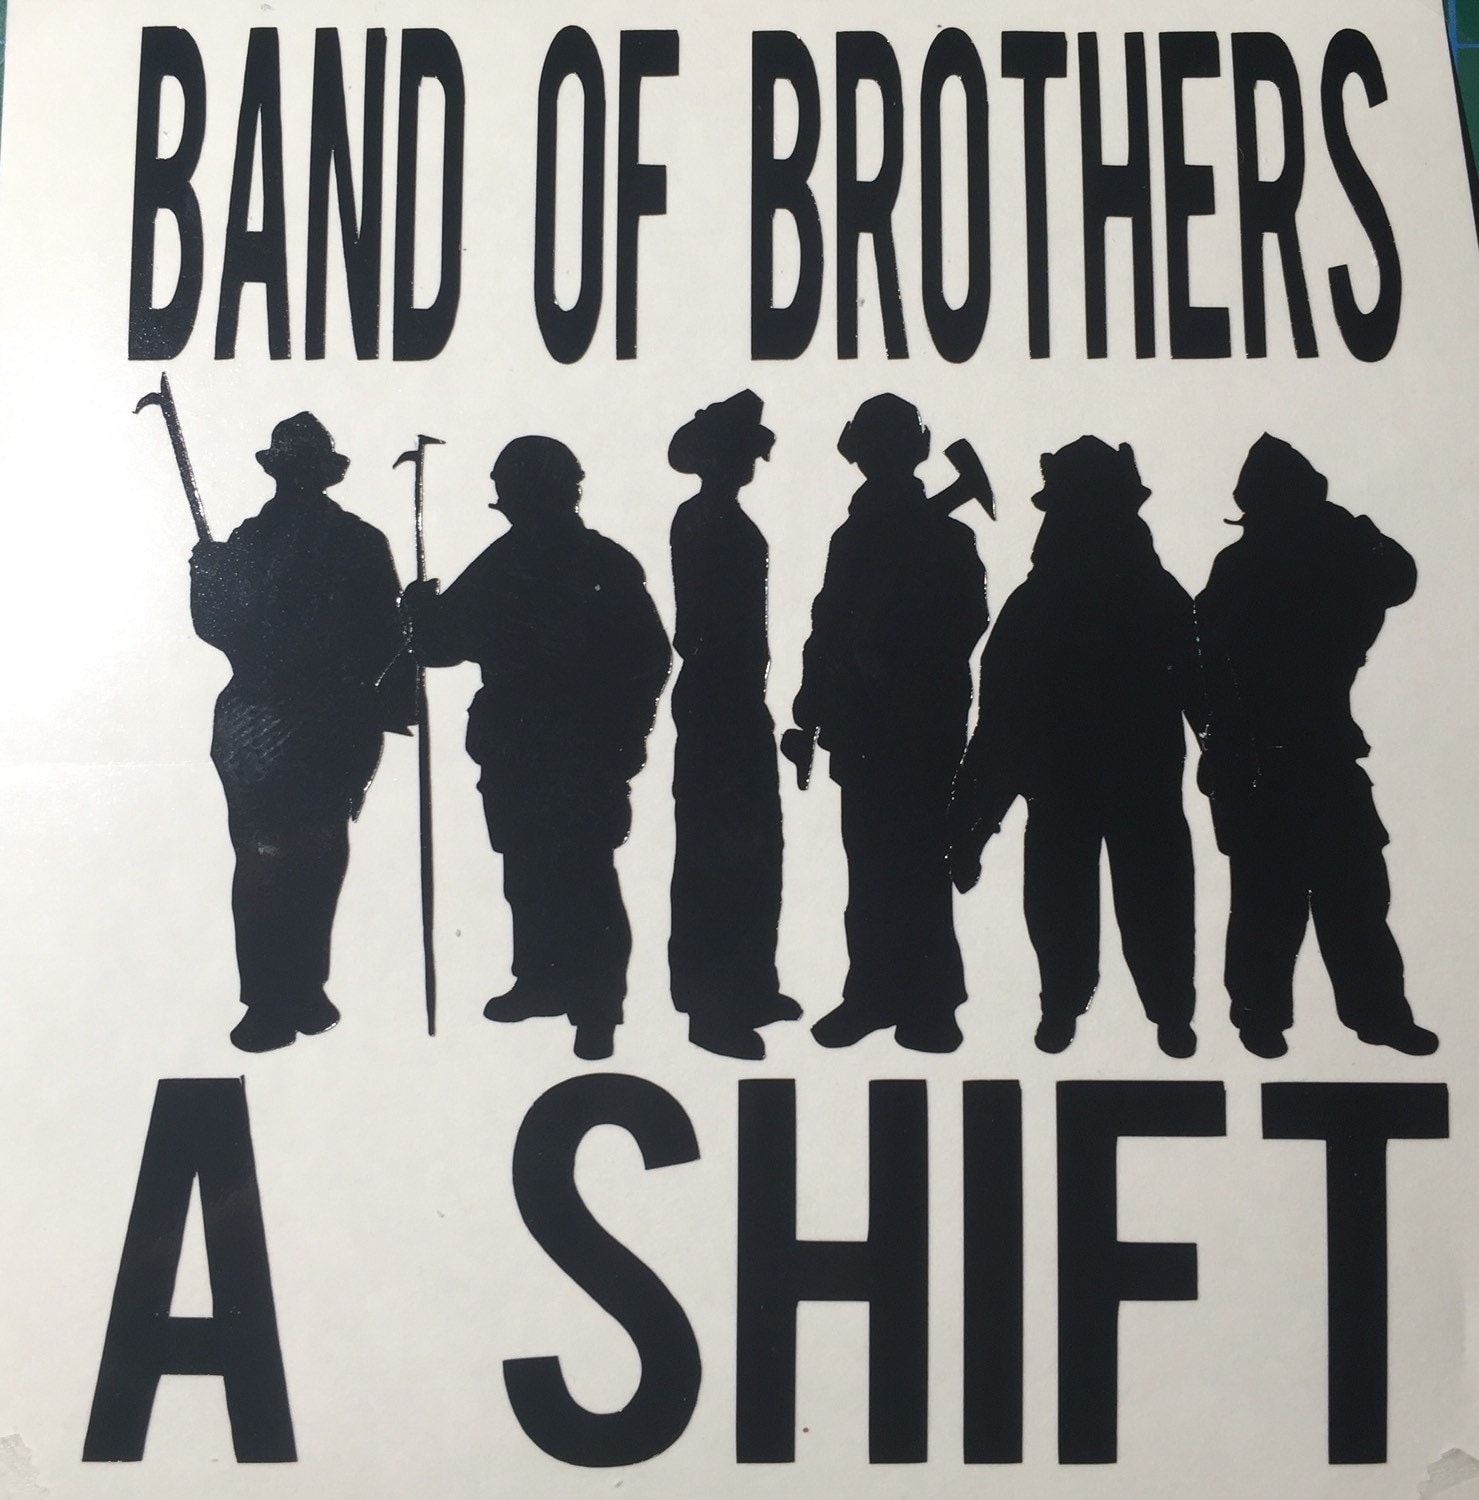 Fire department a shift band of brothers vinyl decal